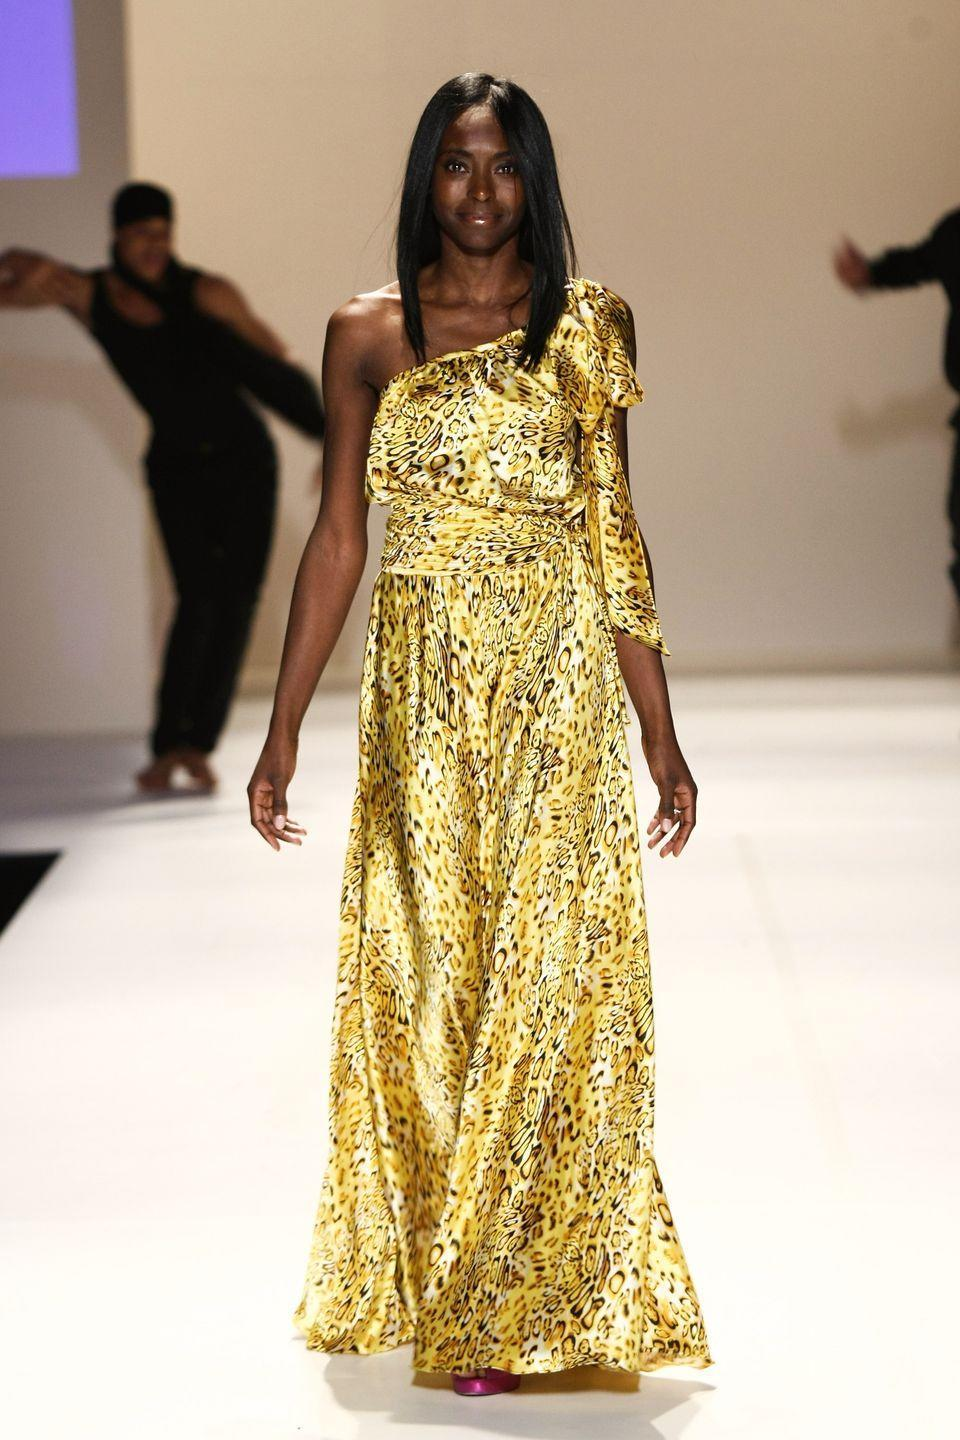 <p>The Princess, who is also known for being the face of Pantene, often walks in shows at various Fashion Weeks. Here, Keisha was photographed rehearsing for the Code Purple fall 2012 fashion show in a vibrant animal print gown. </p>